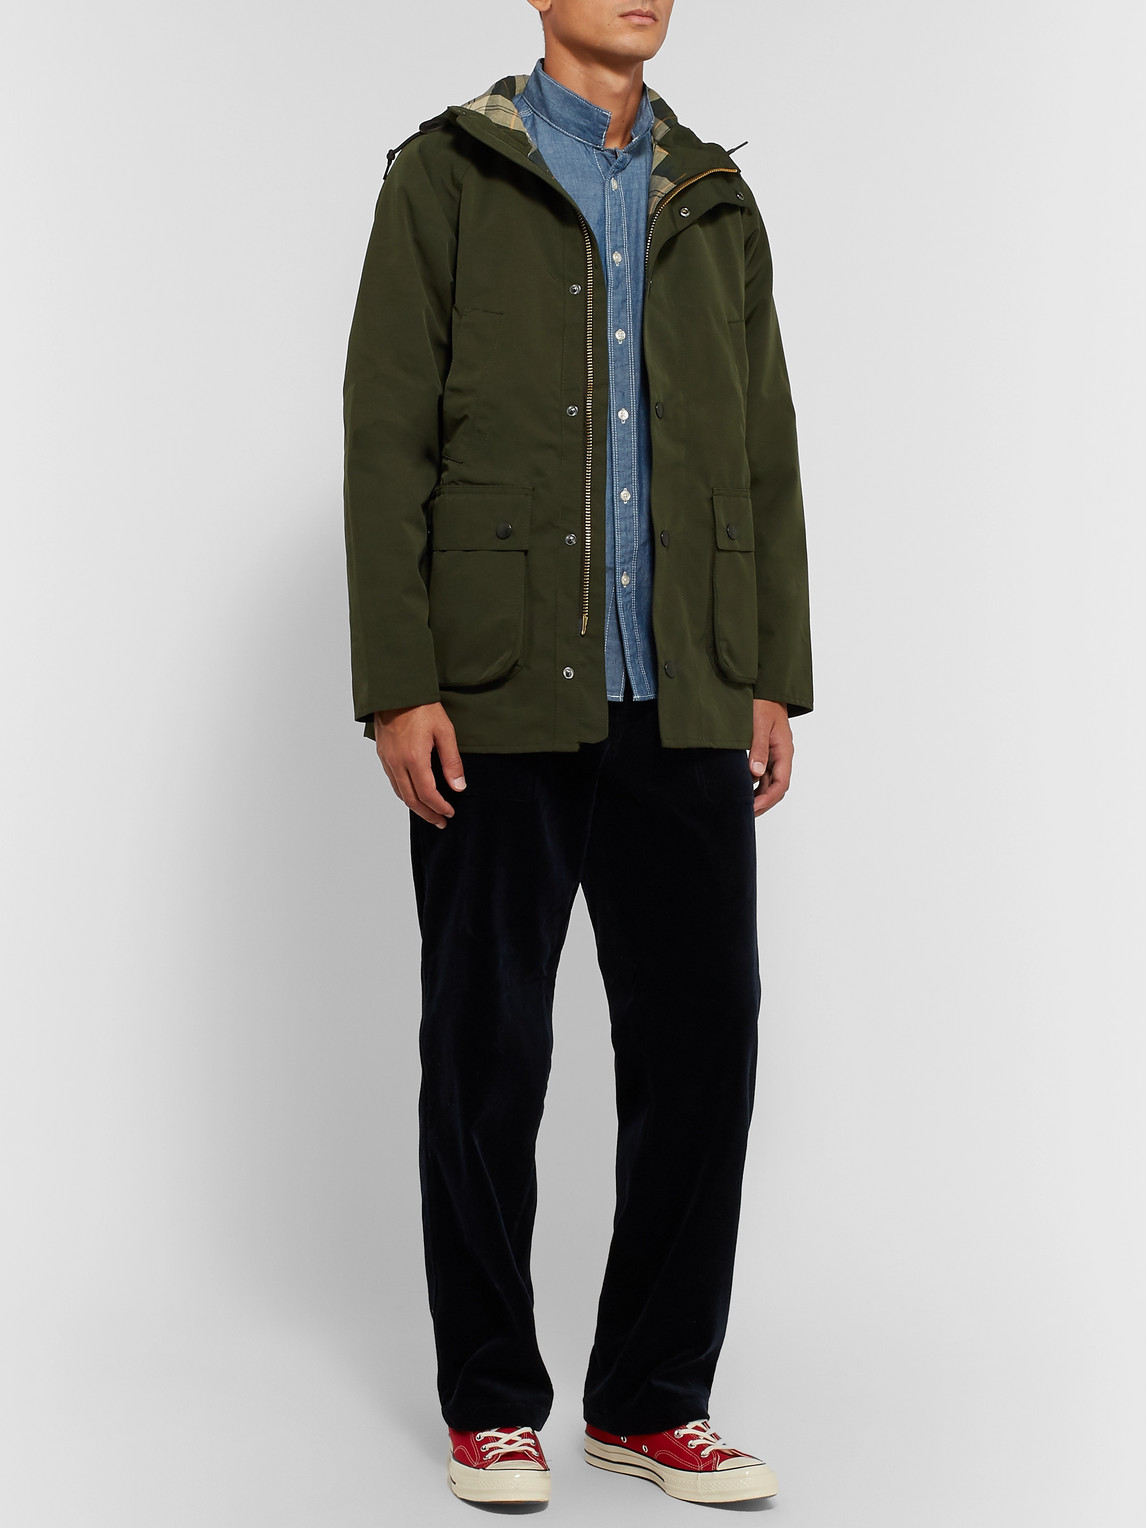 Barbour White Label - White Label Bedale Slim-fit Hooded Shell Jacket - Green - L - Men